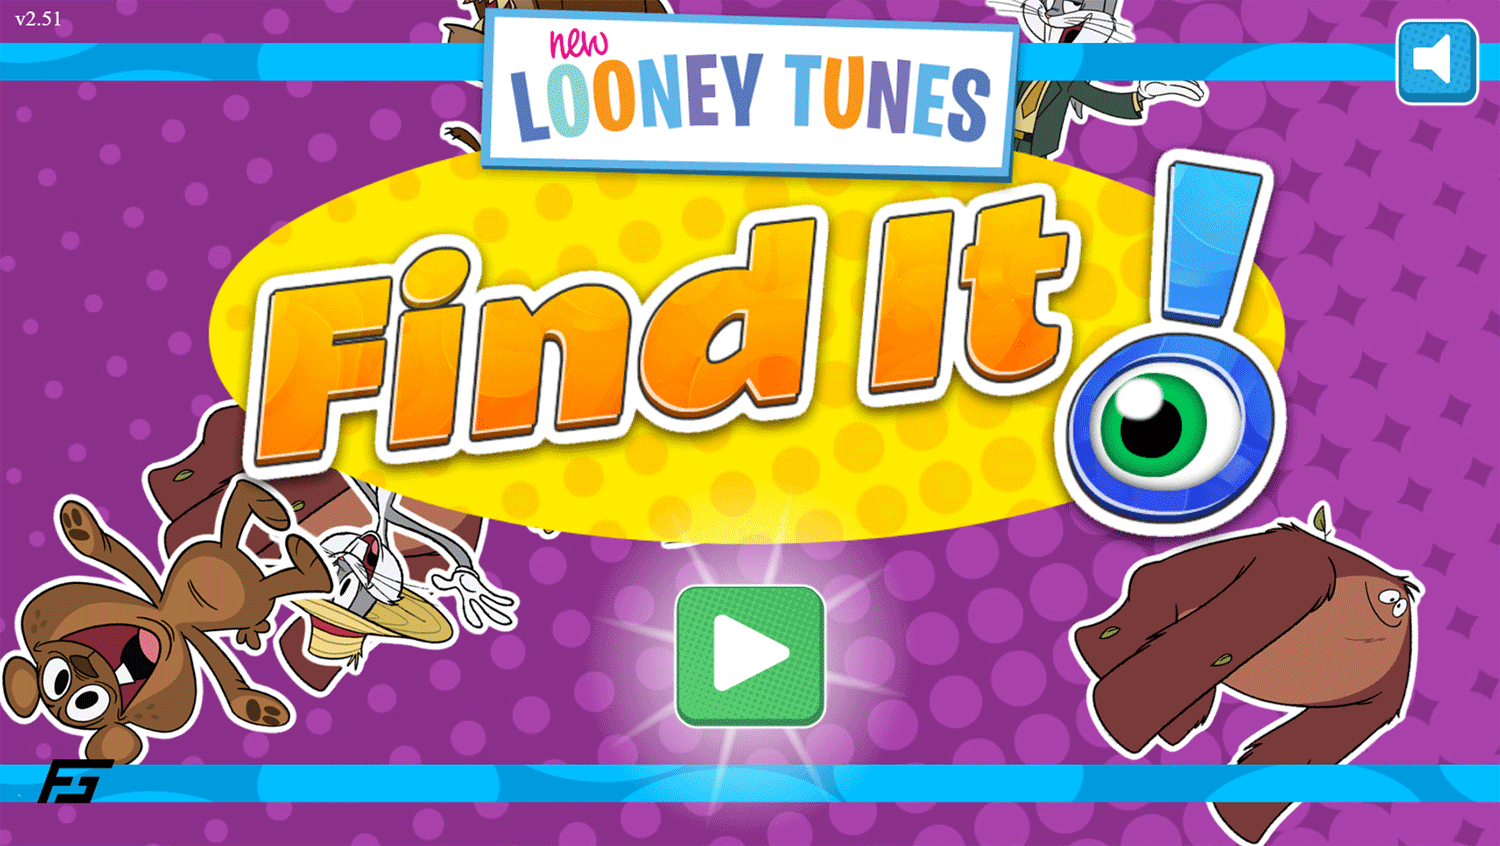 New Looney Tunes Find It Game Welcome Screen Screenshot.